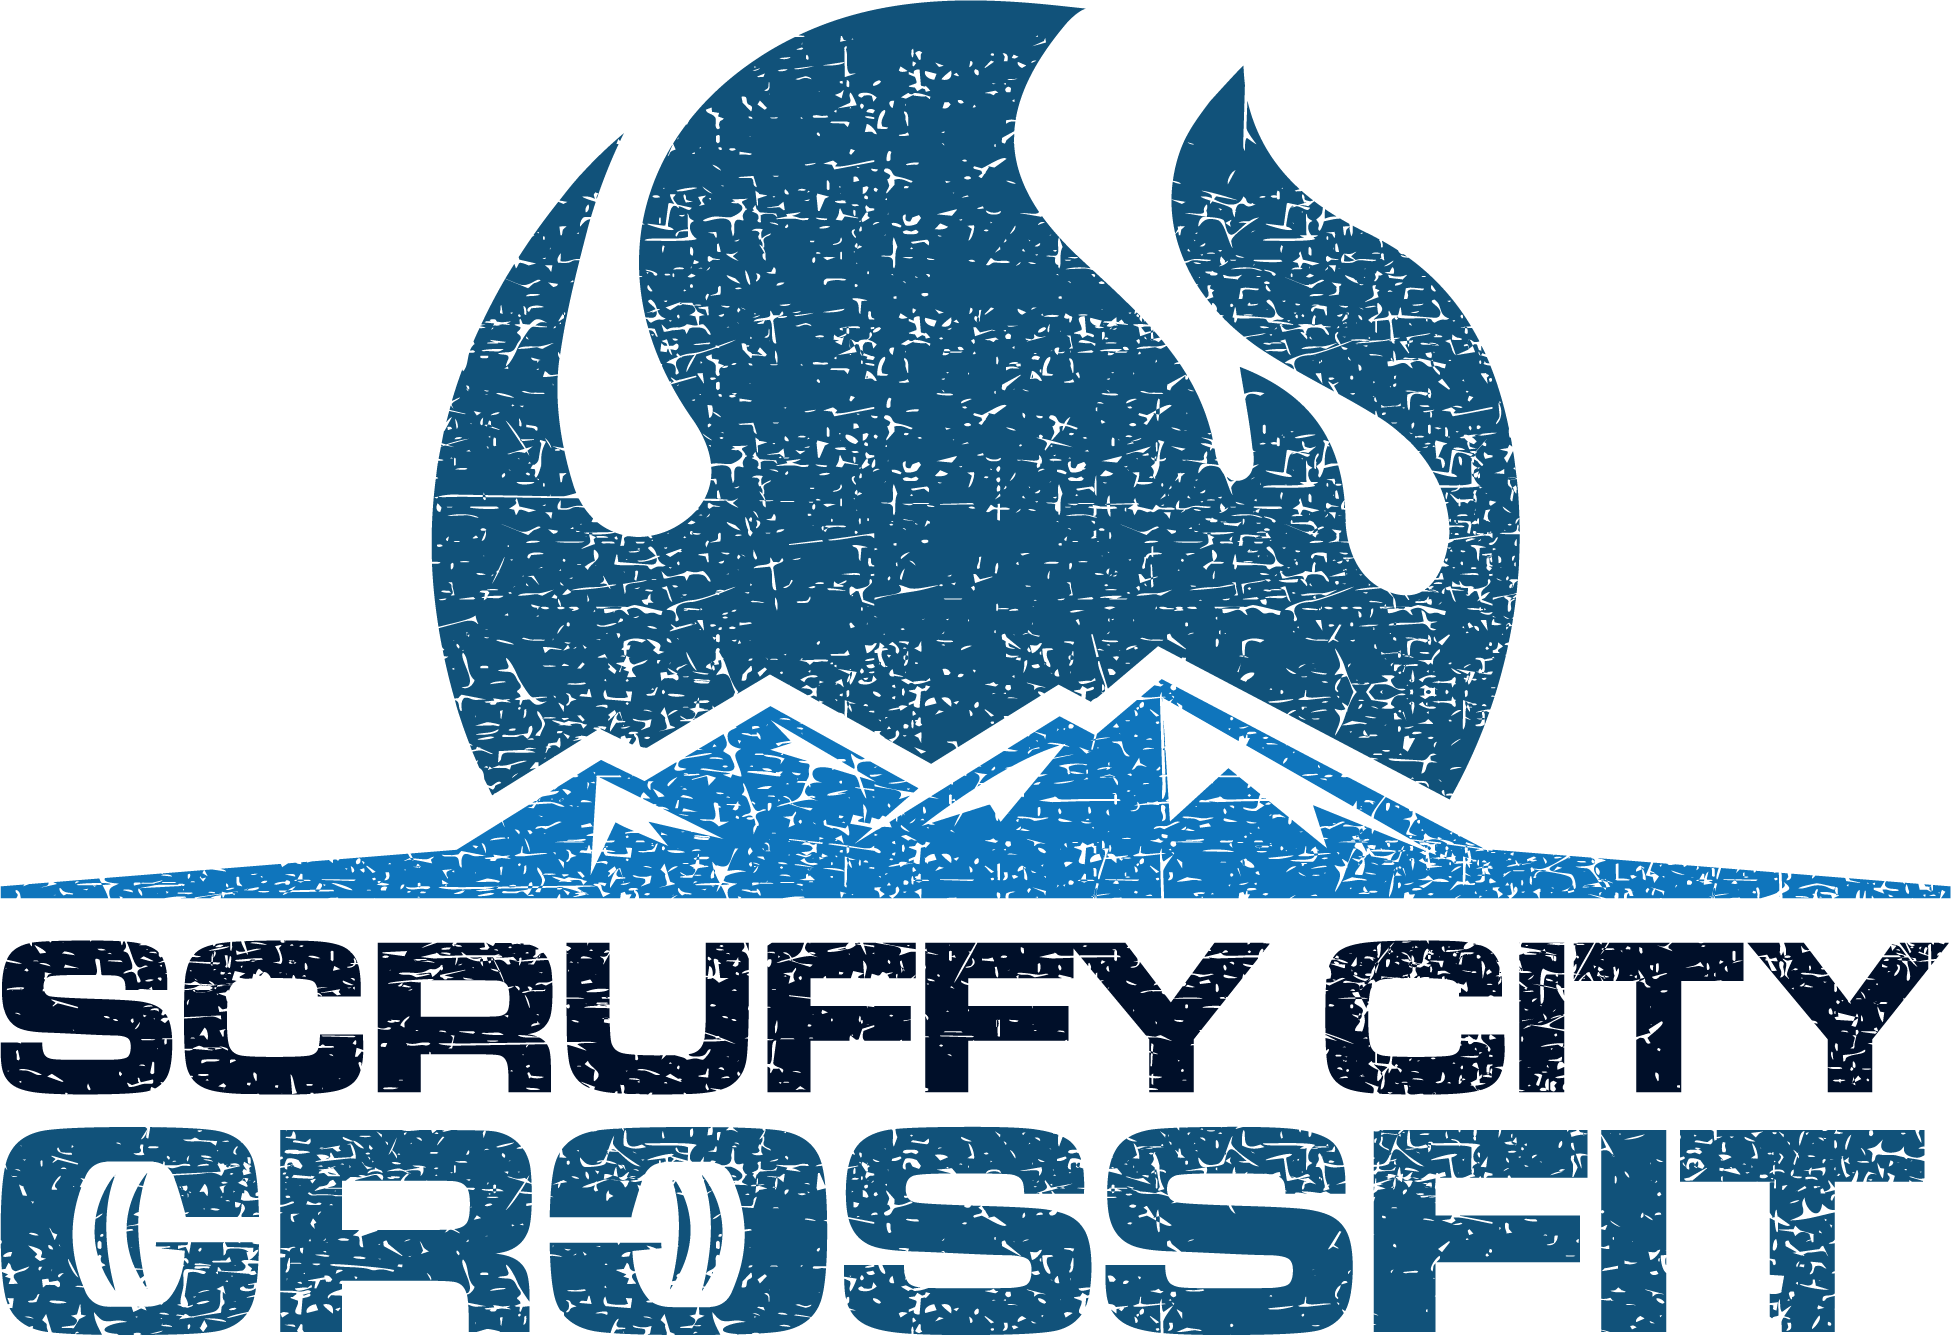 Scruffy City CrossFit needs a logo that captures its image and goals!